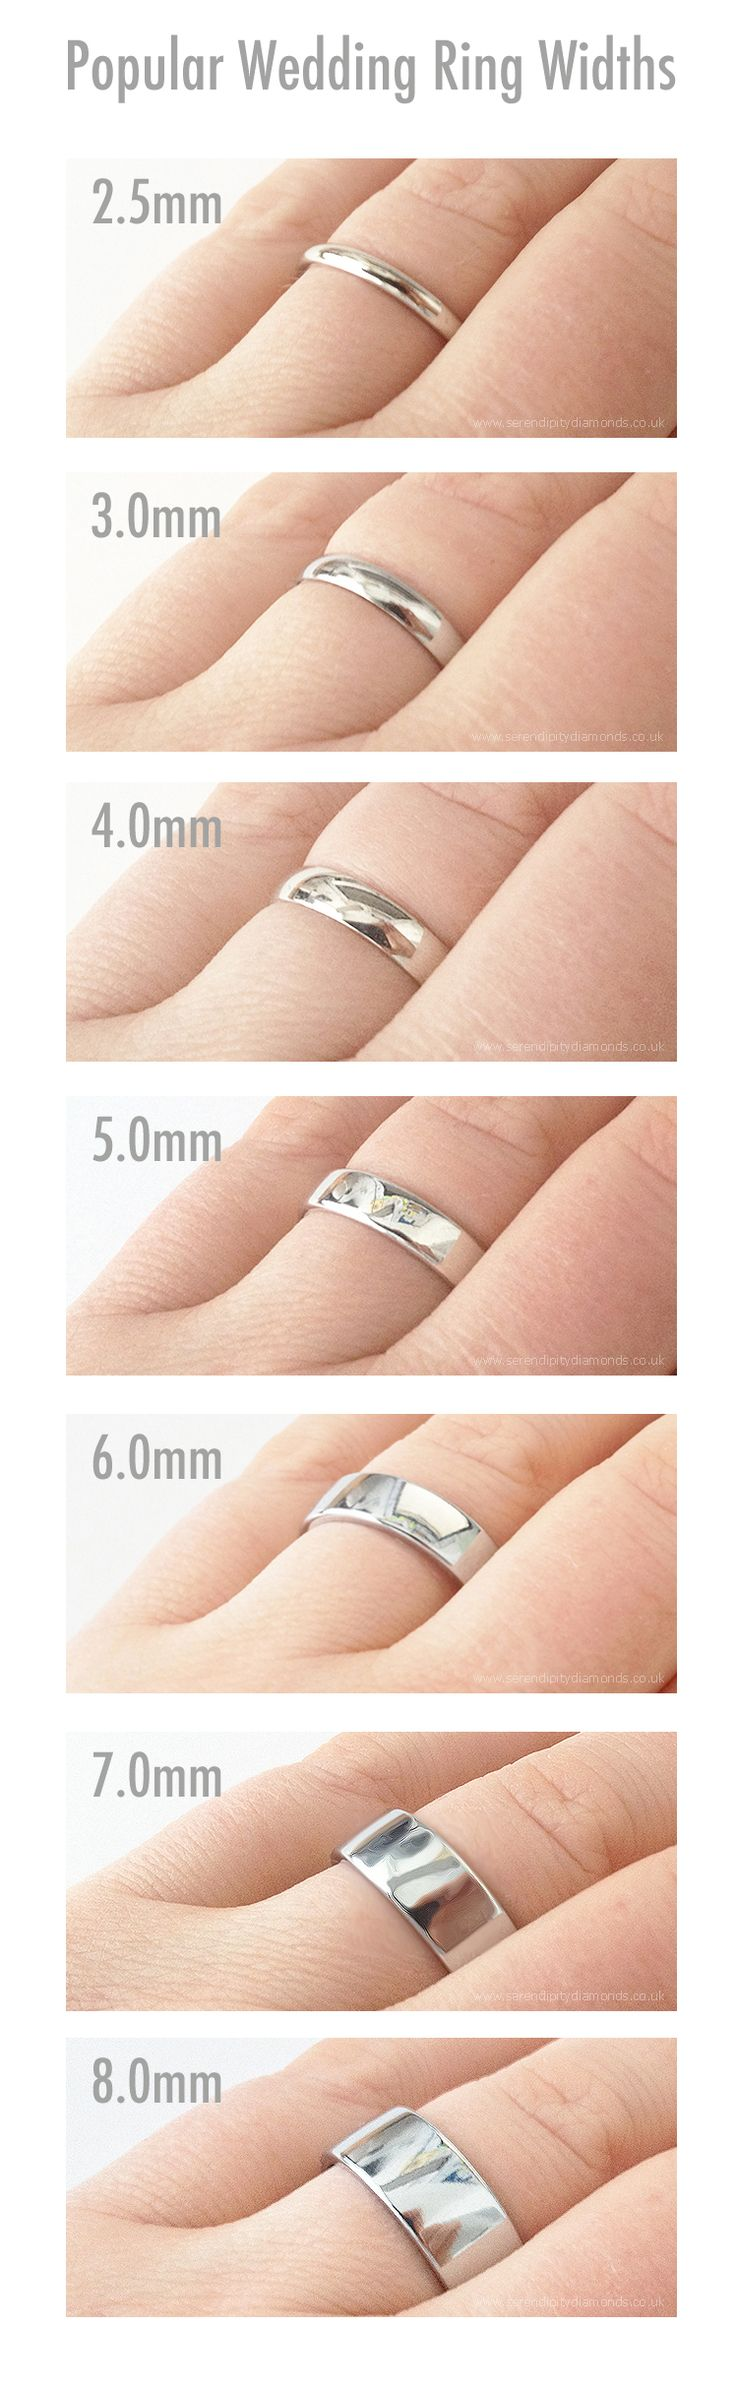 average men s wedding ring size uk - the best wedding ring 2017